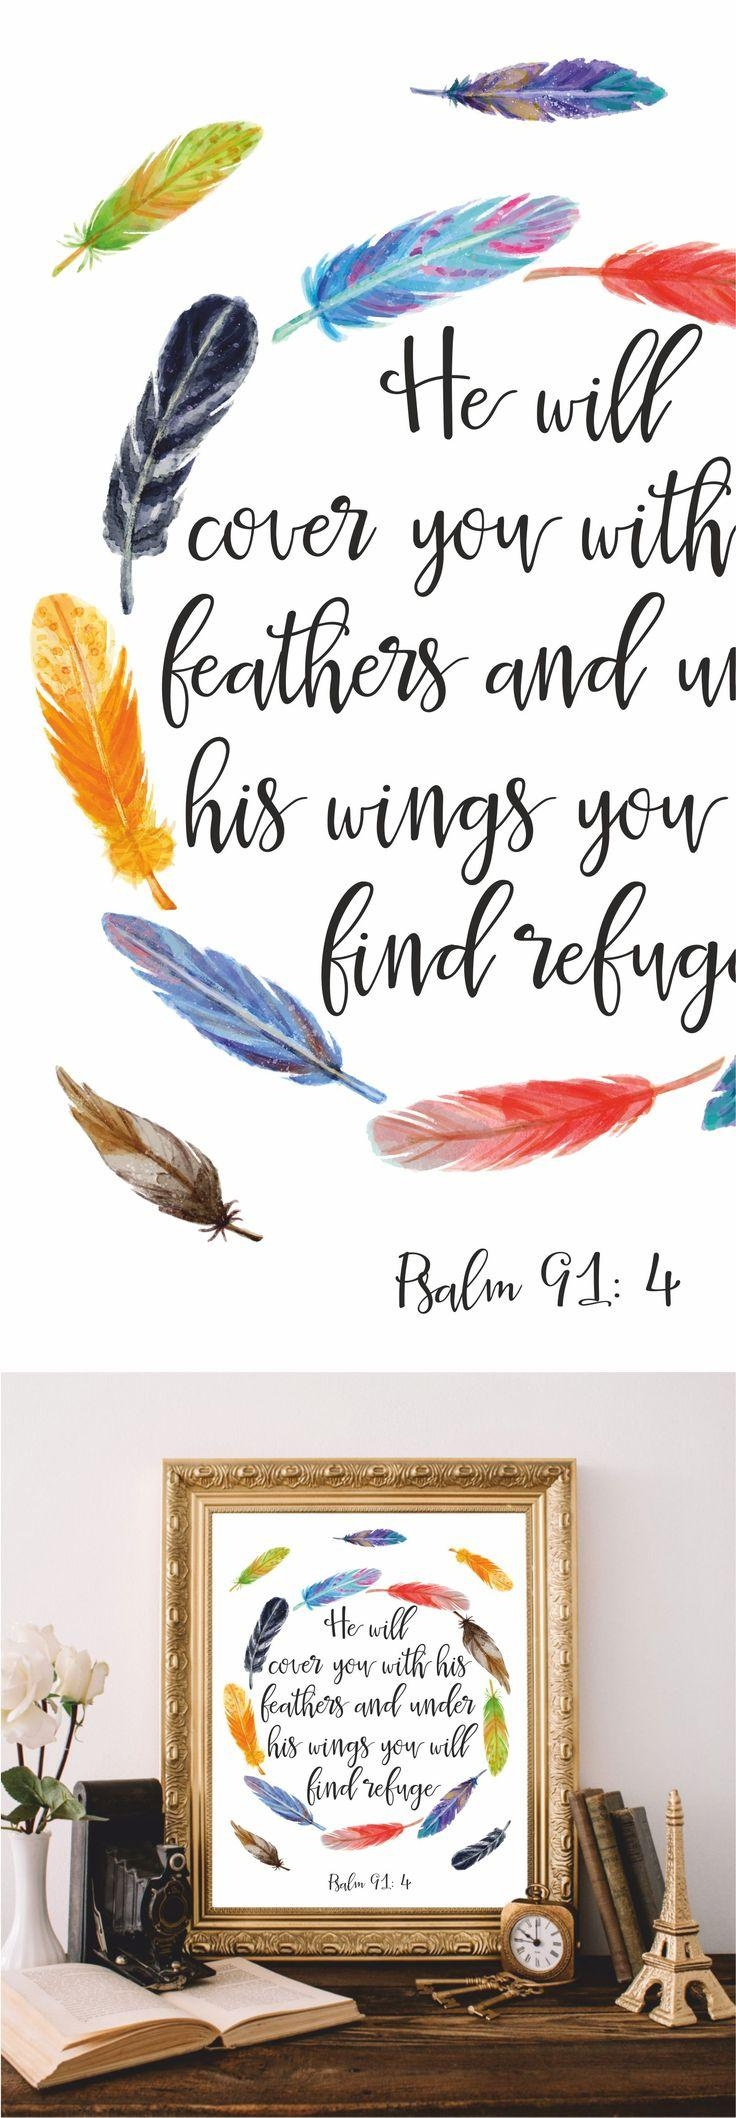 Best 25+ Scripture Wall Art Ideas On Pinterest | Christian Art With Regard To Scripture Canvas Wall Art (View 18 of 20)